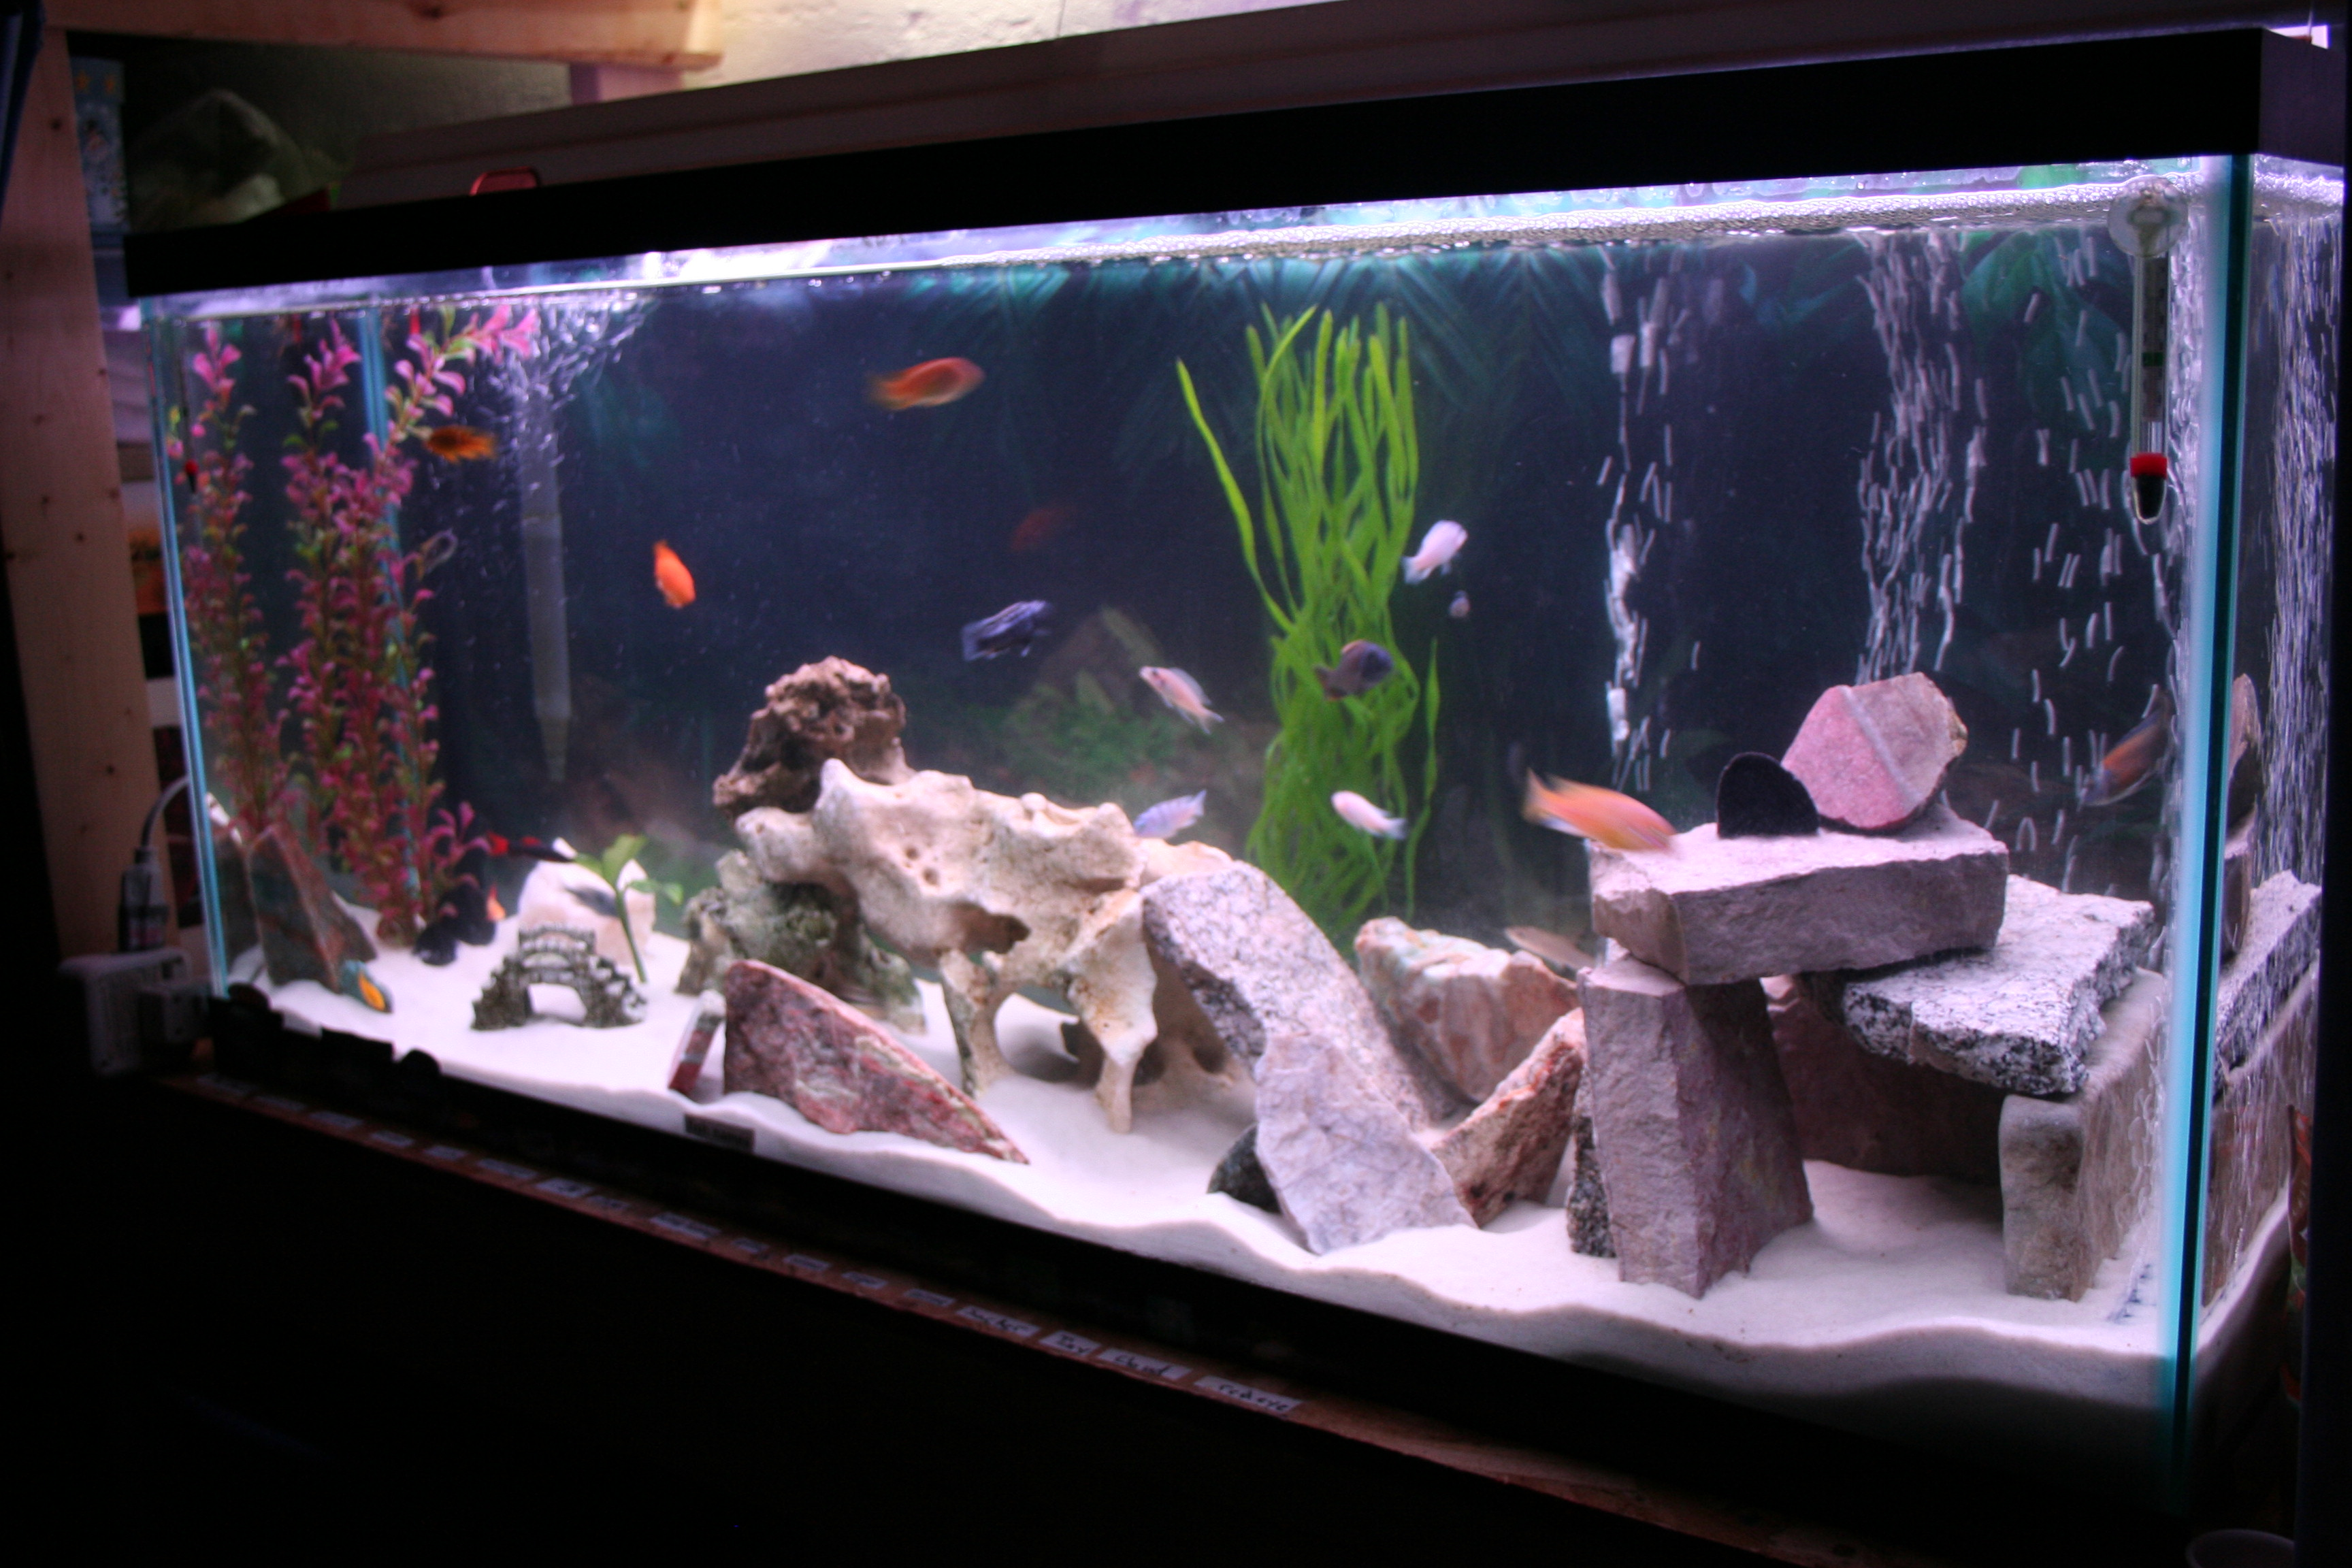 Fish tank decorations for cichlids aquarium rock cave for Aquarium decoration online